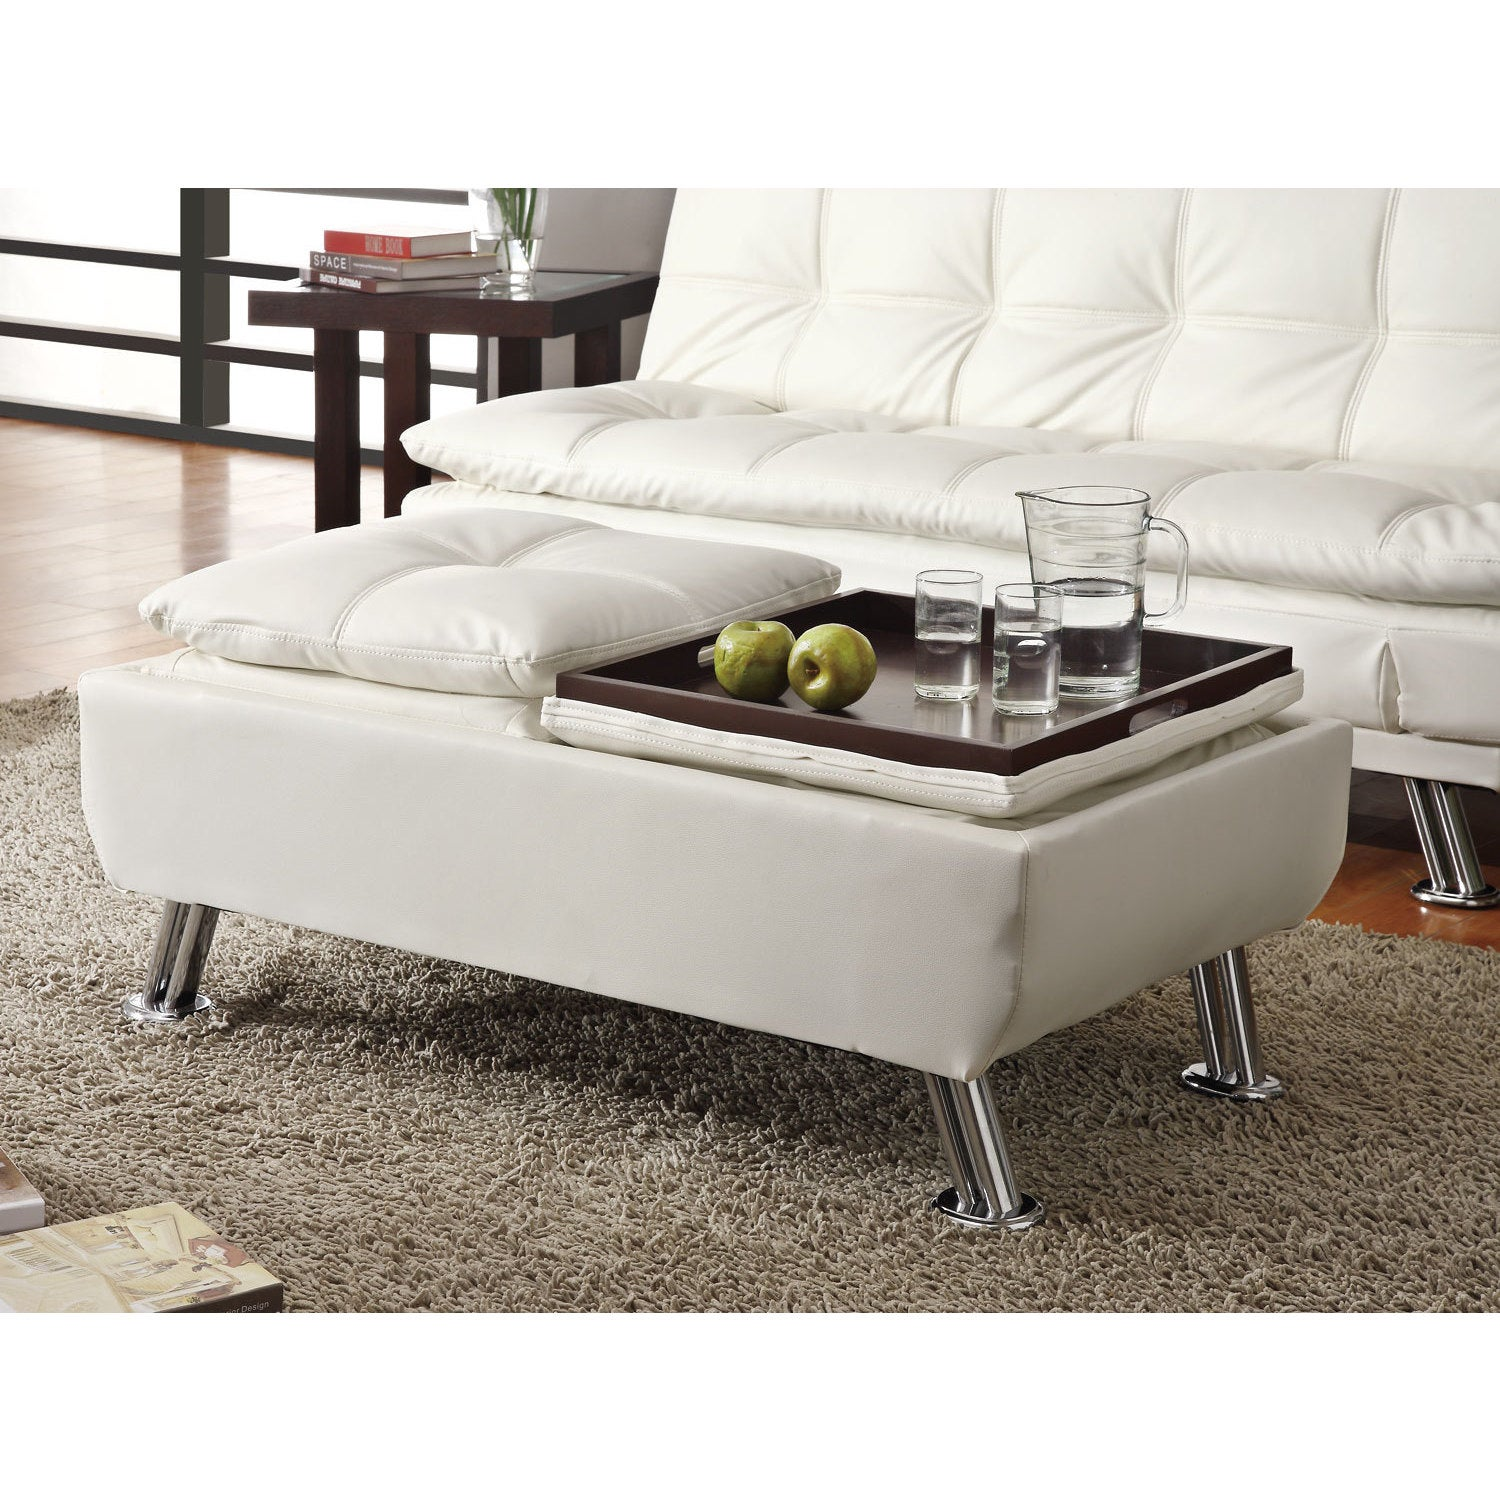 Coaster Furniture Faux Leather Storage Ottoman with Rever...